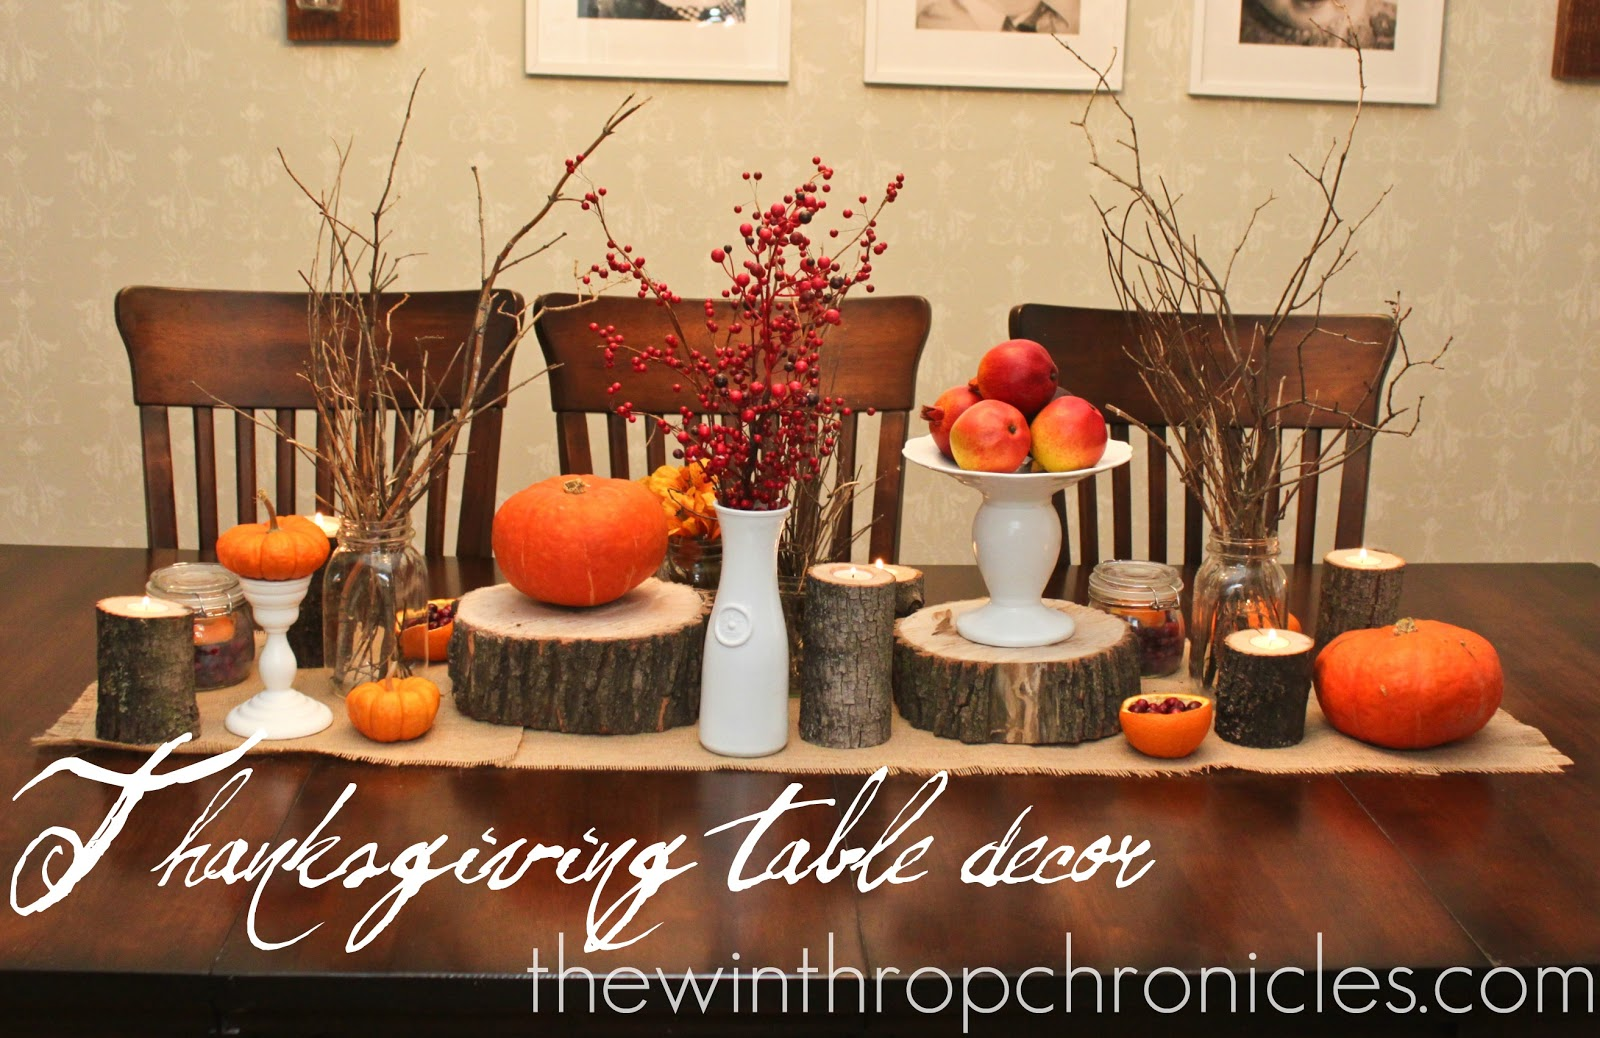 the winthrop chronicles: thanksgiving table decor